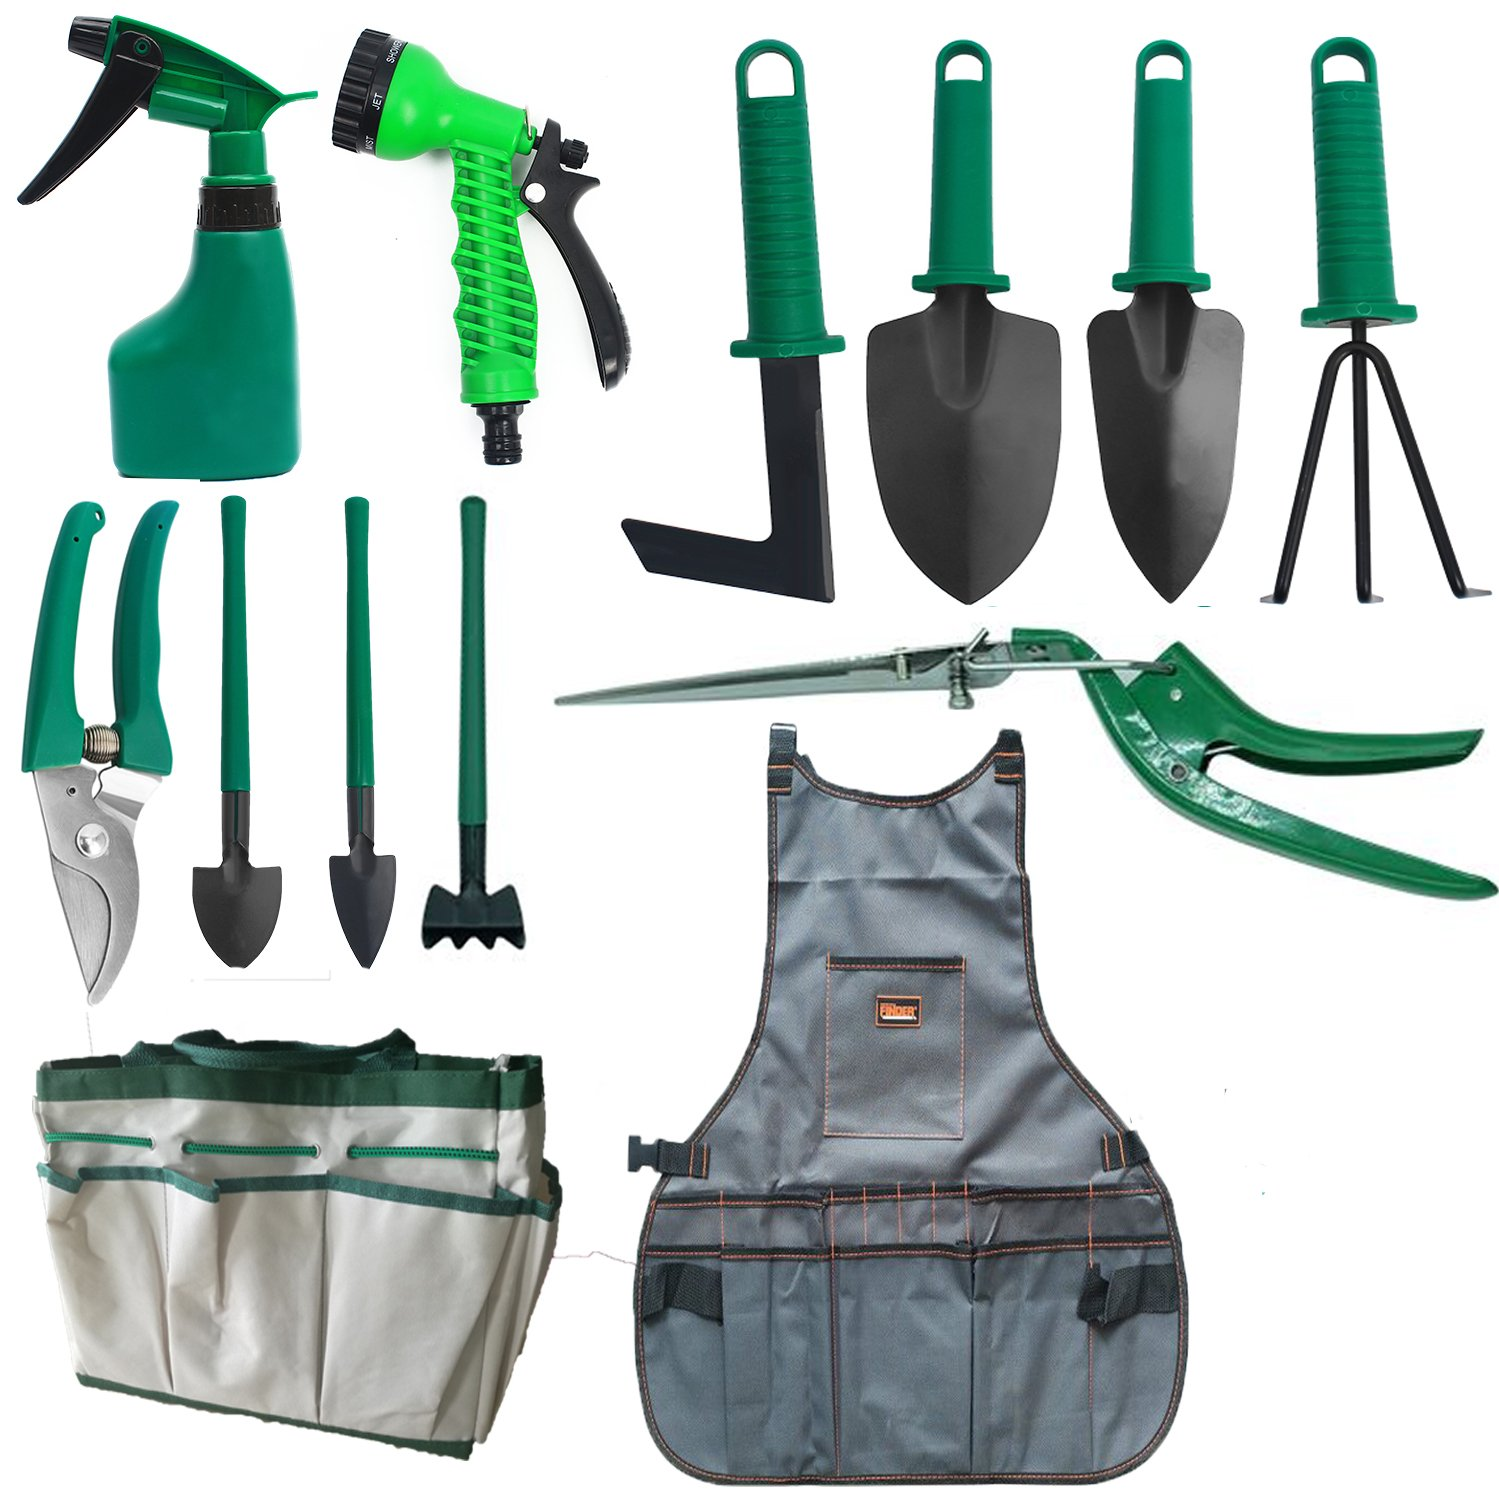 Garden Tool Set 13 Pieces Heavy Duty Gardening Gifts Kit With Garden Tote Bag, Canvas Apron,Pruning Shears - Best Gift For Gardener Father's Day by GreenKit